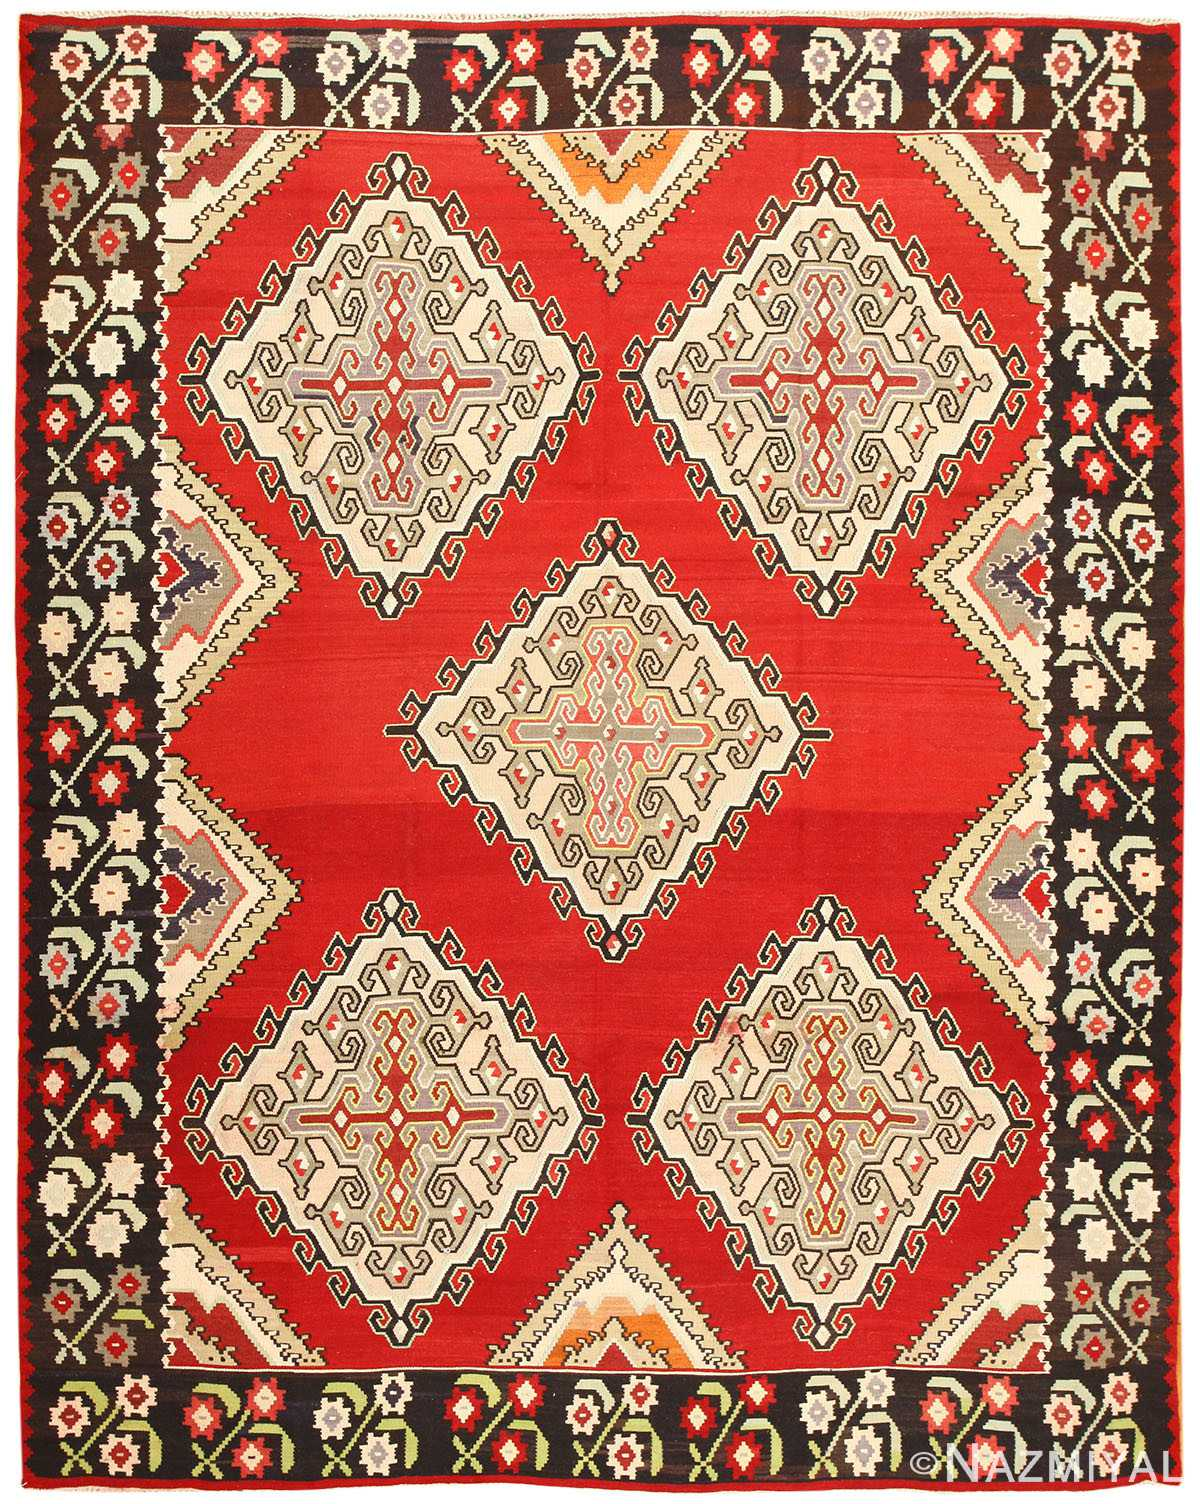 Vintage Turkish Kilim Rug 50381 Detail/Large View